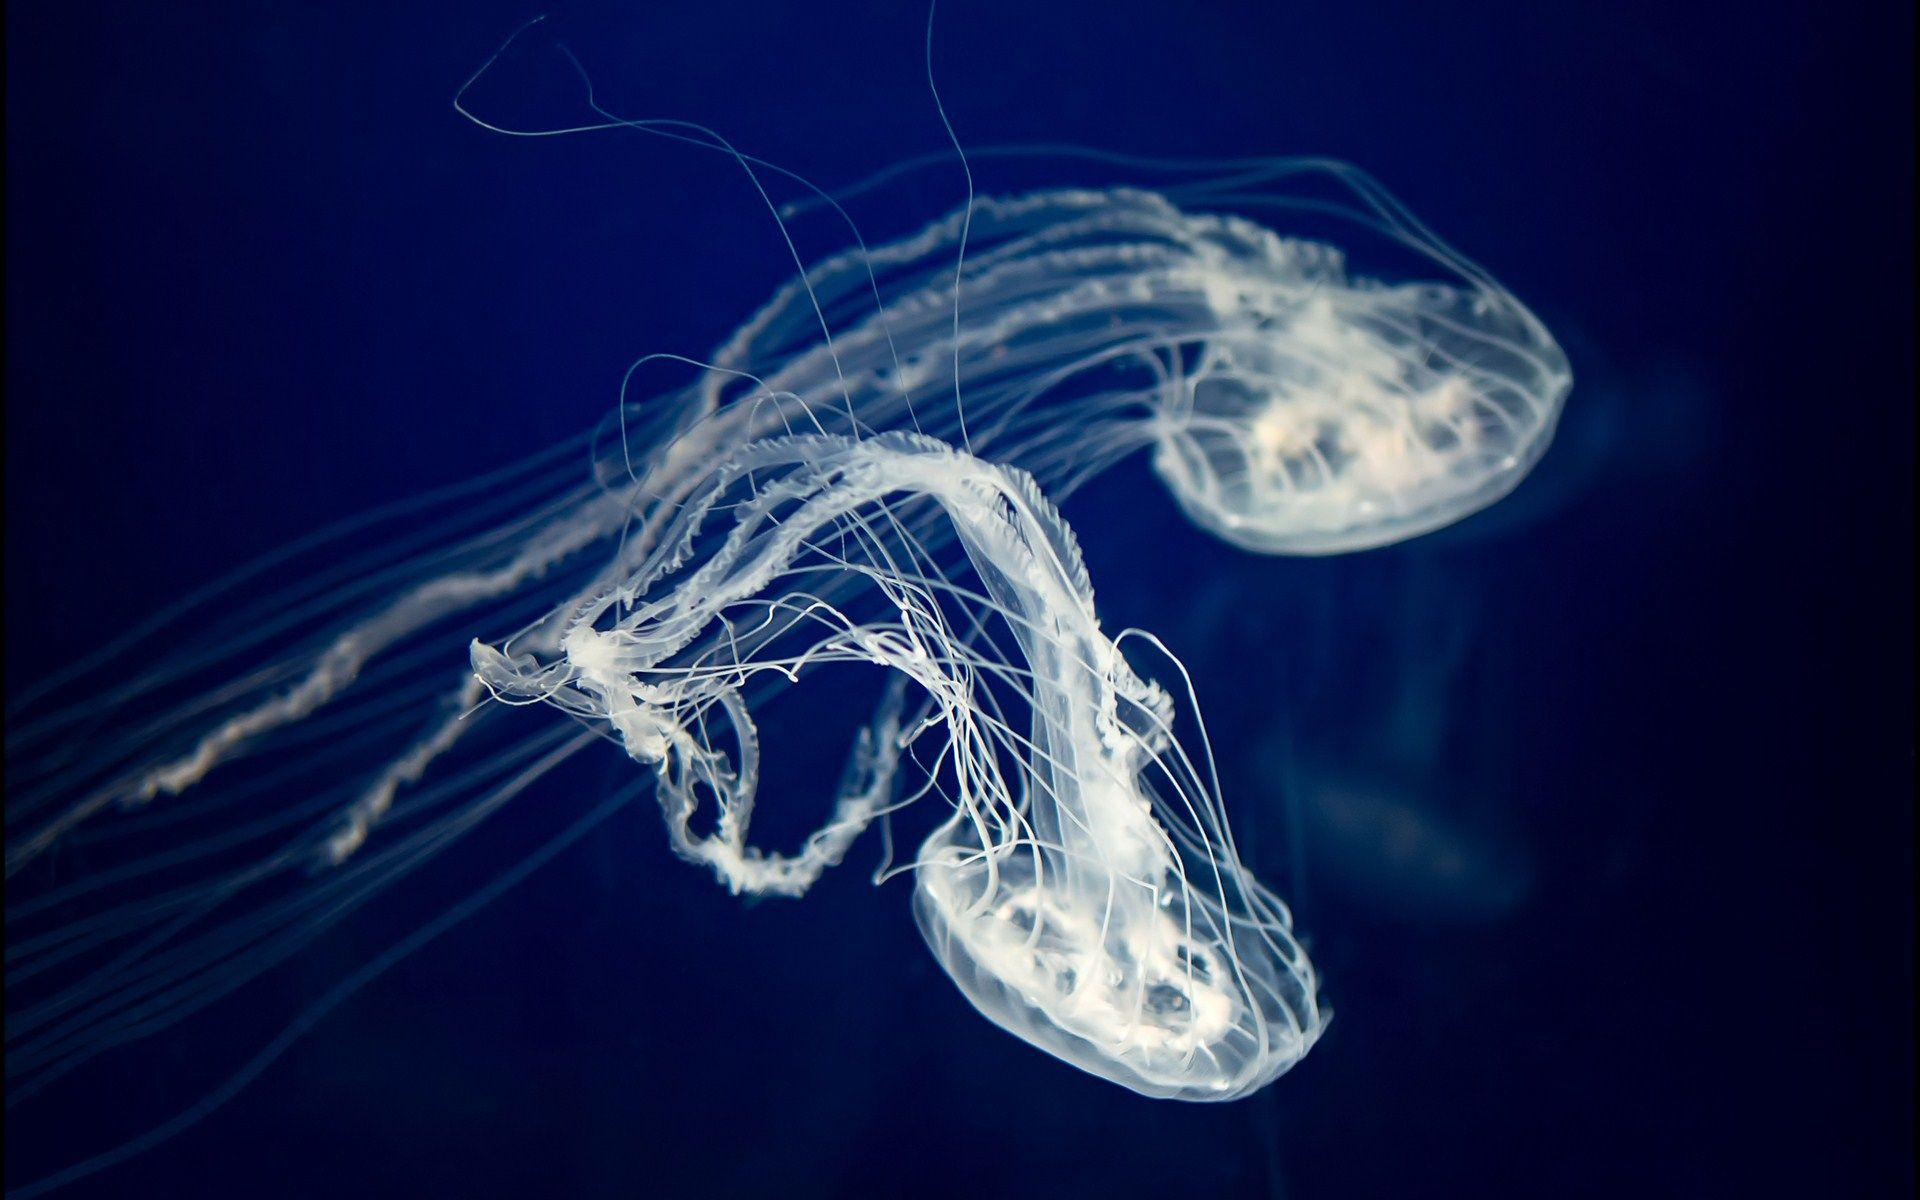 full hd wallpaper jellyfish - photo #13